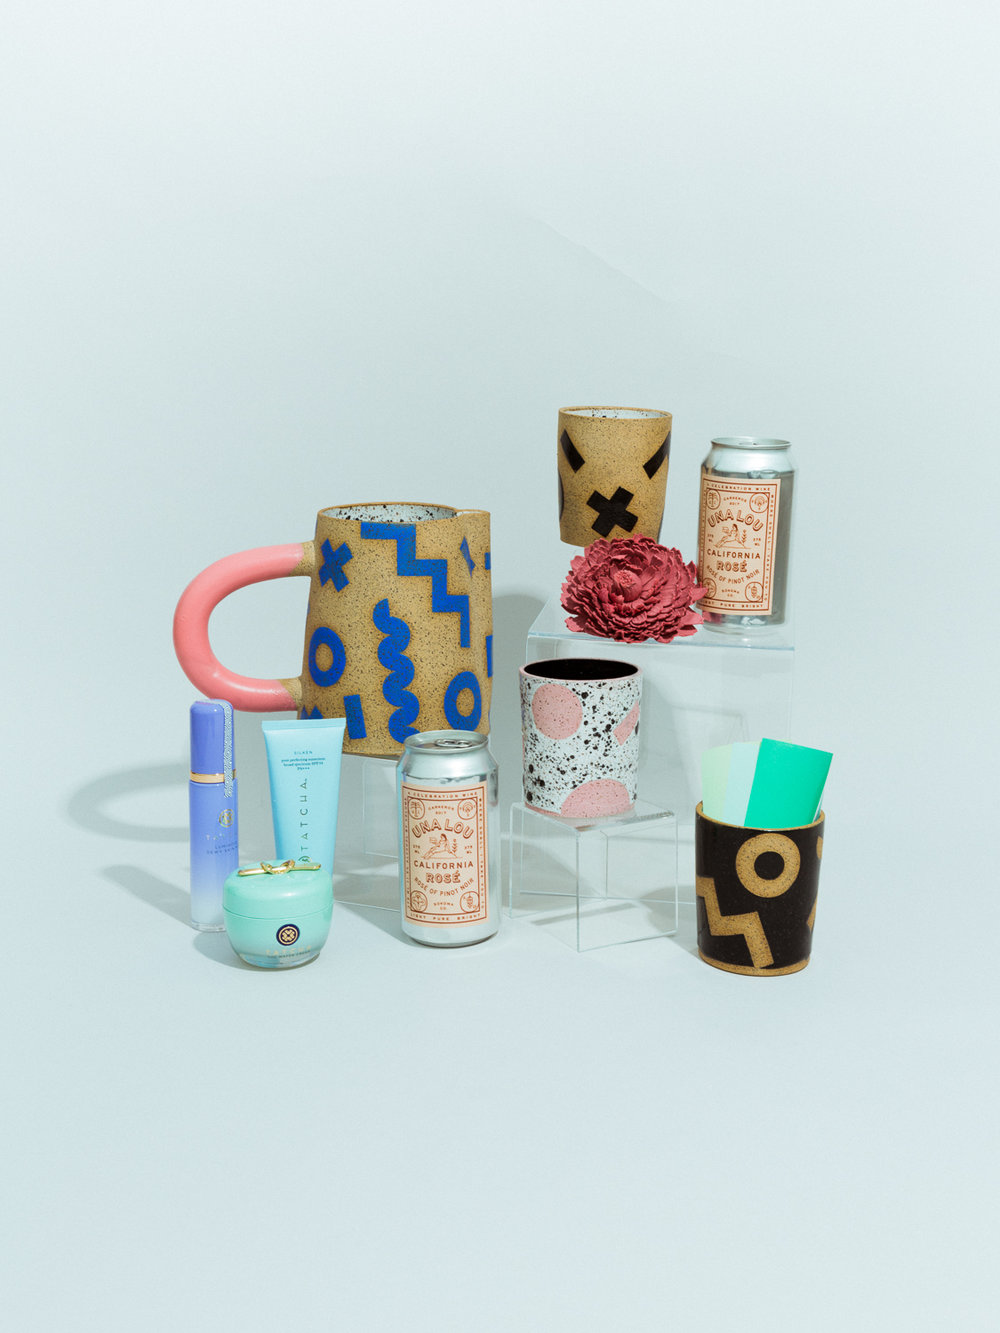 TATCHA  cleanser, cream, and serum,  RECREATION CENTER  ceramic pitcher and tumblers,  LOEWE X WILLIAM MORRIS  brooch available at Matchesfashion.com, and  UNA LOU ROSÉ  wine.